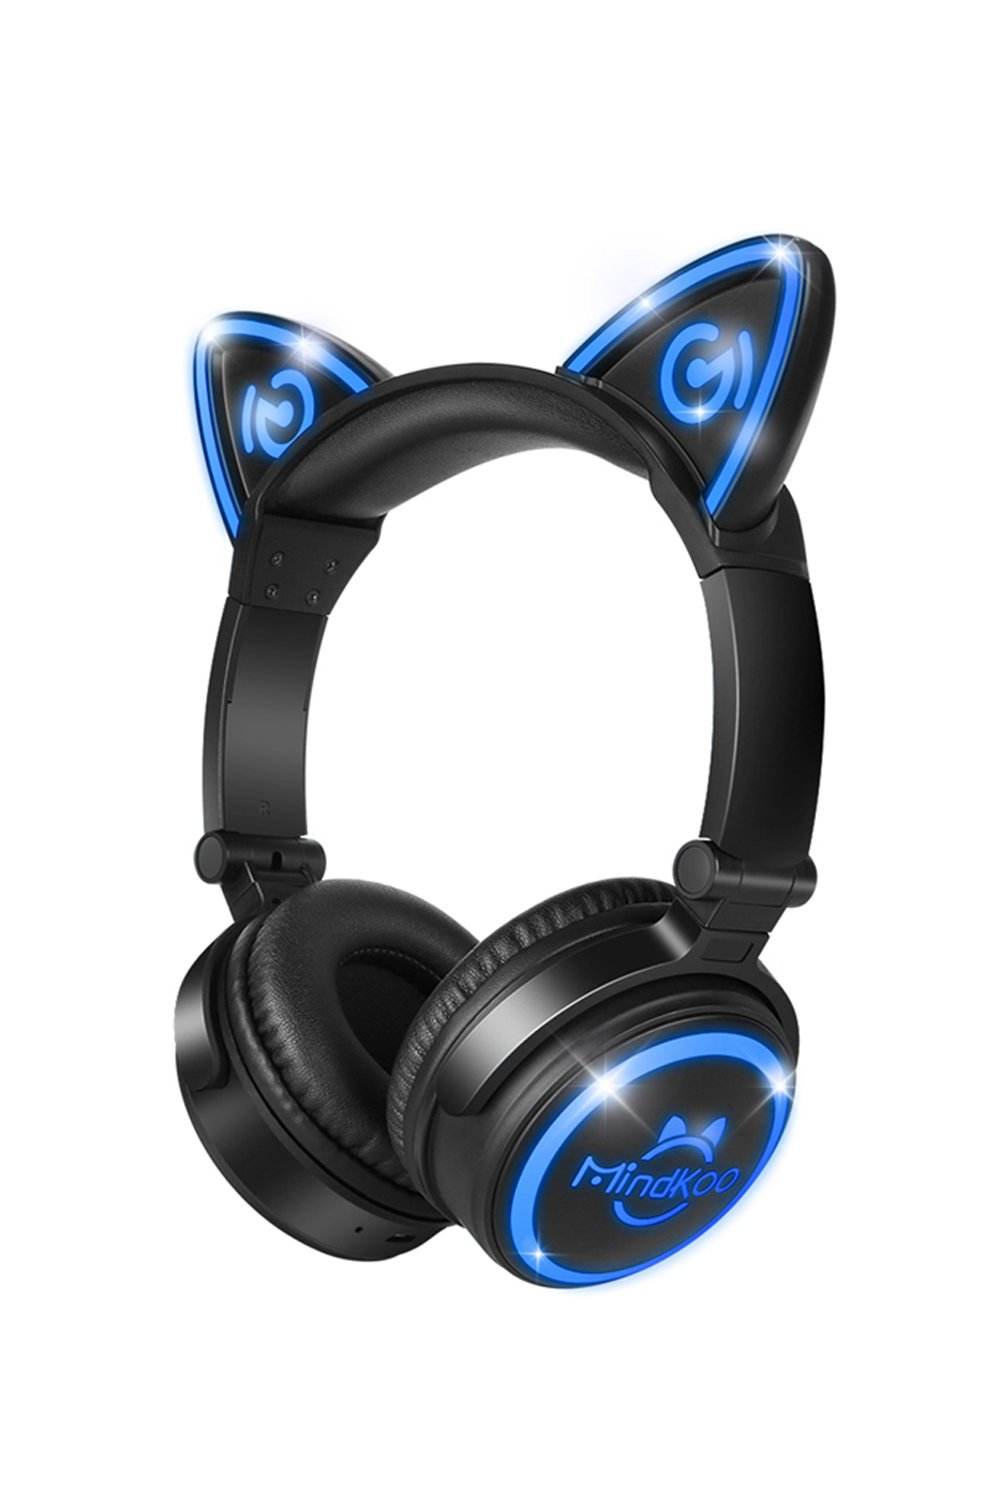 MindKoo Unicat MH-6 Kids Bluetooth Headphones,Cat Ear V4.2 Bluetooth Headsets On-Ear Earphones wtih Mic,(Patented LED Flashing Glowing Cosplay Fancy Foldable Gaming Headsets - Black